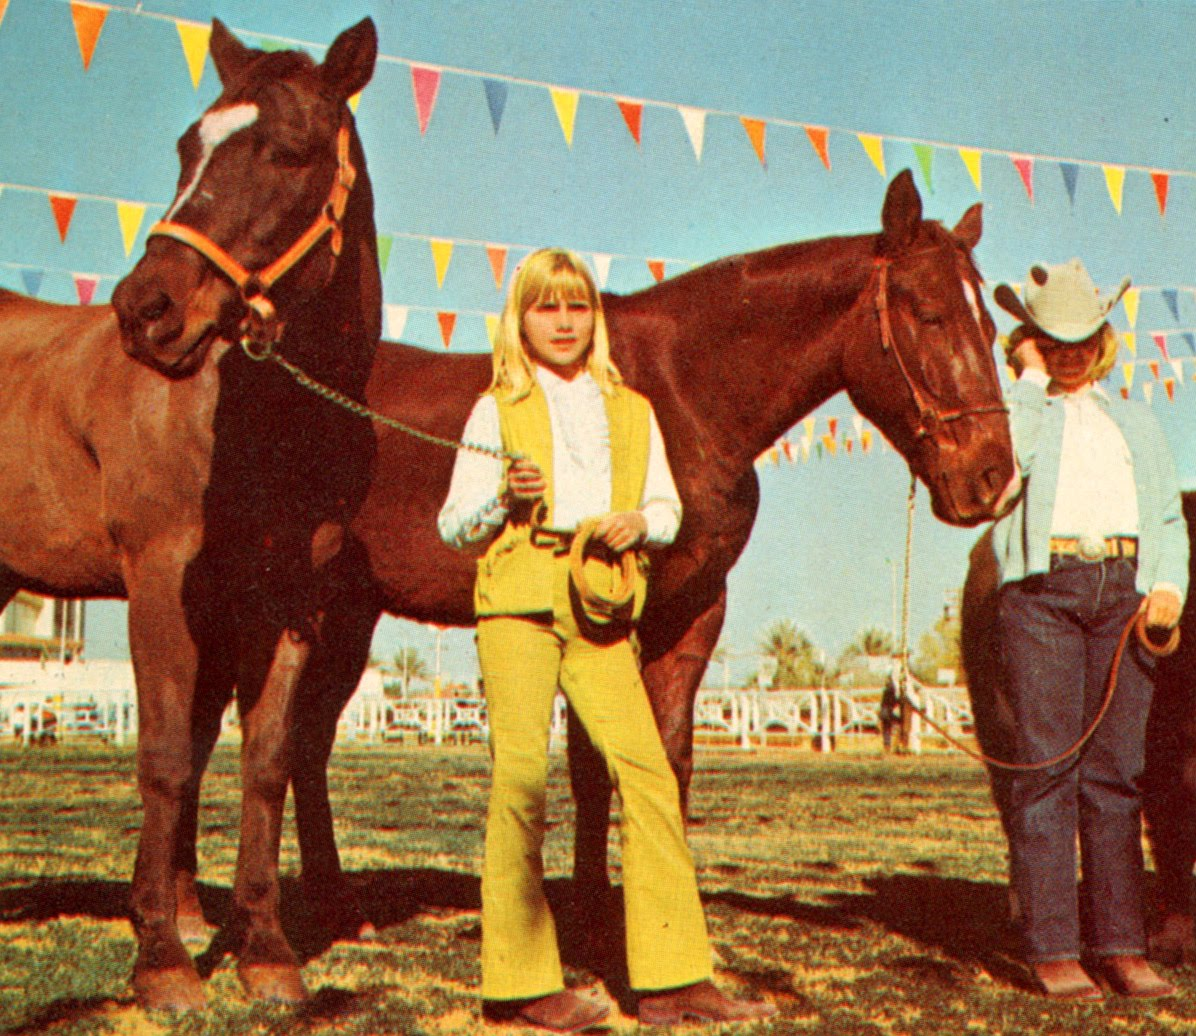 Arizona National Livestock Show, 1968